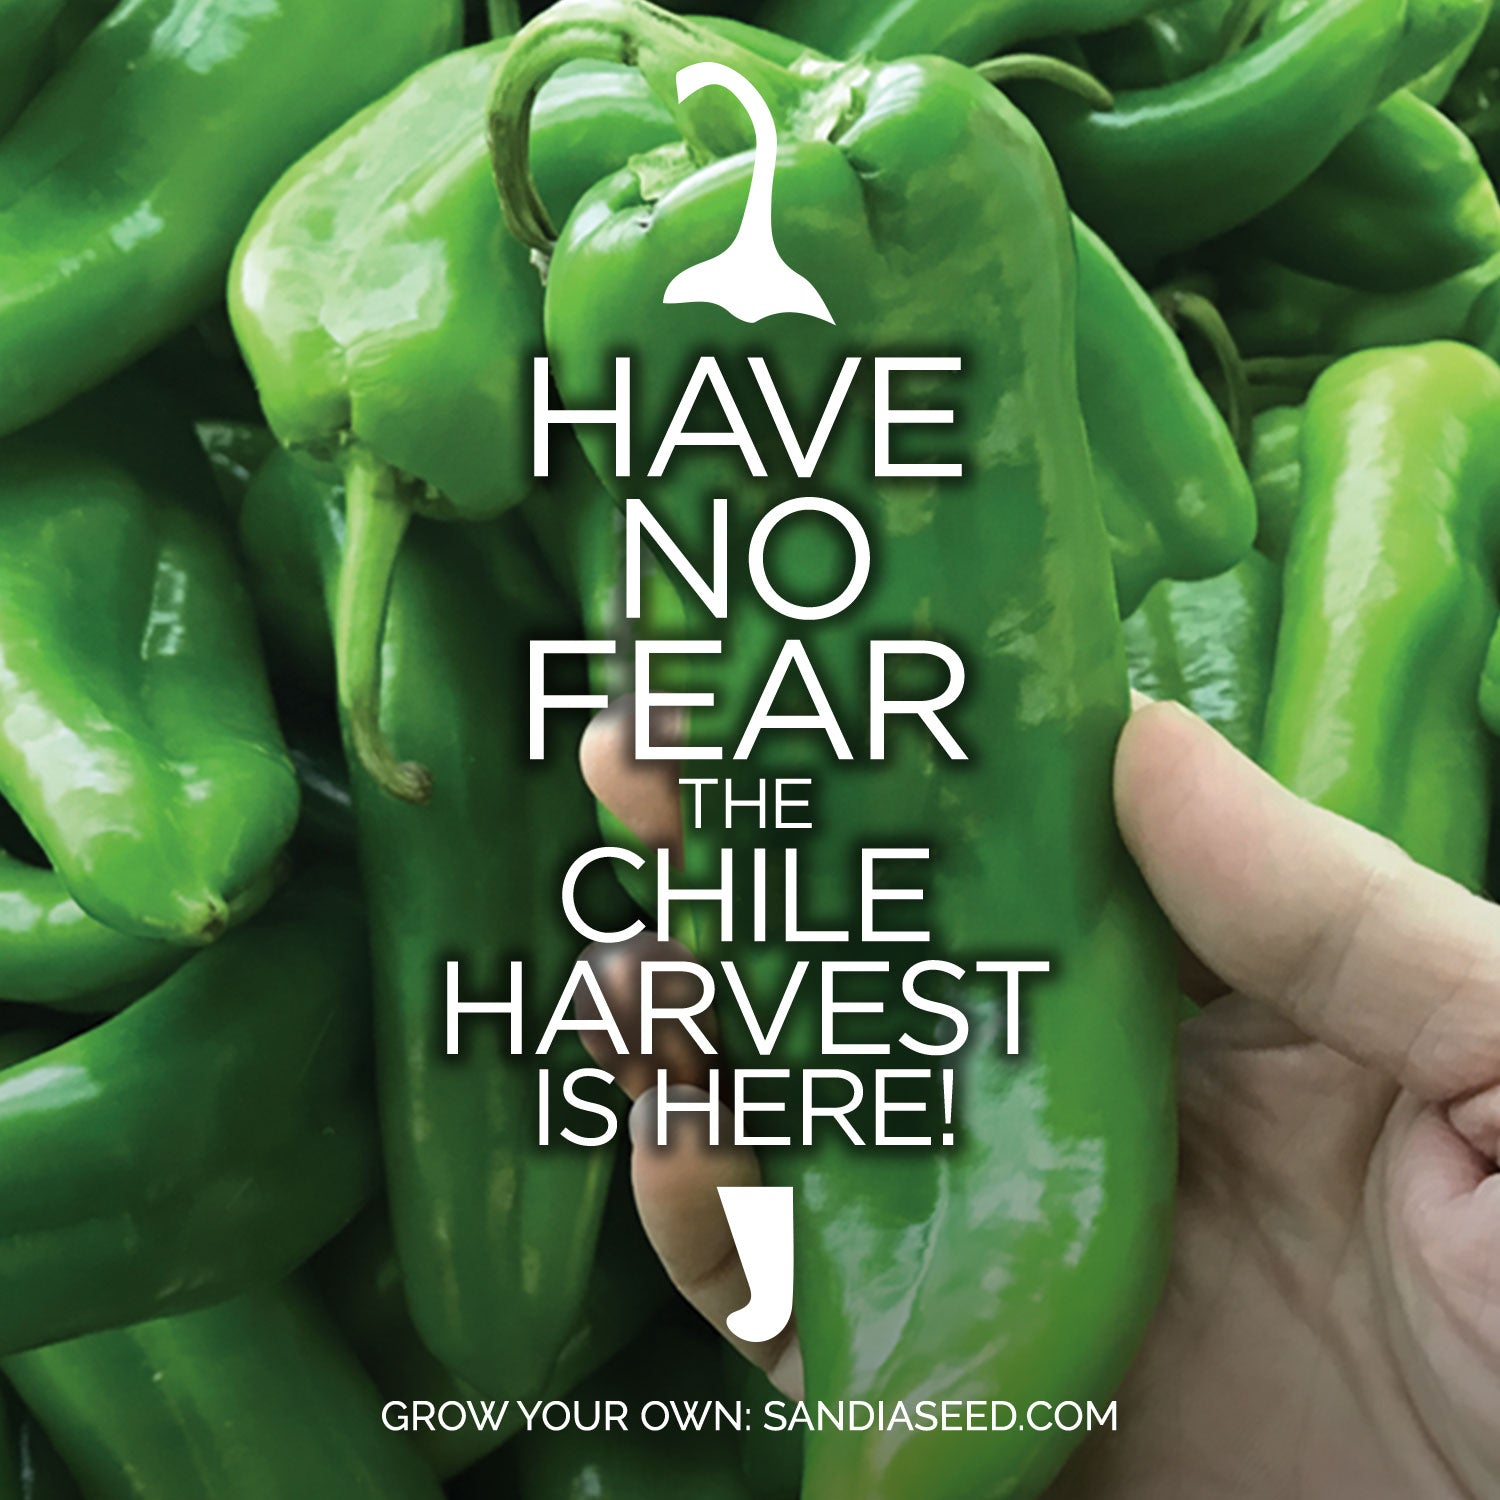 Have No Fear the Chile Harvest is Here